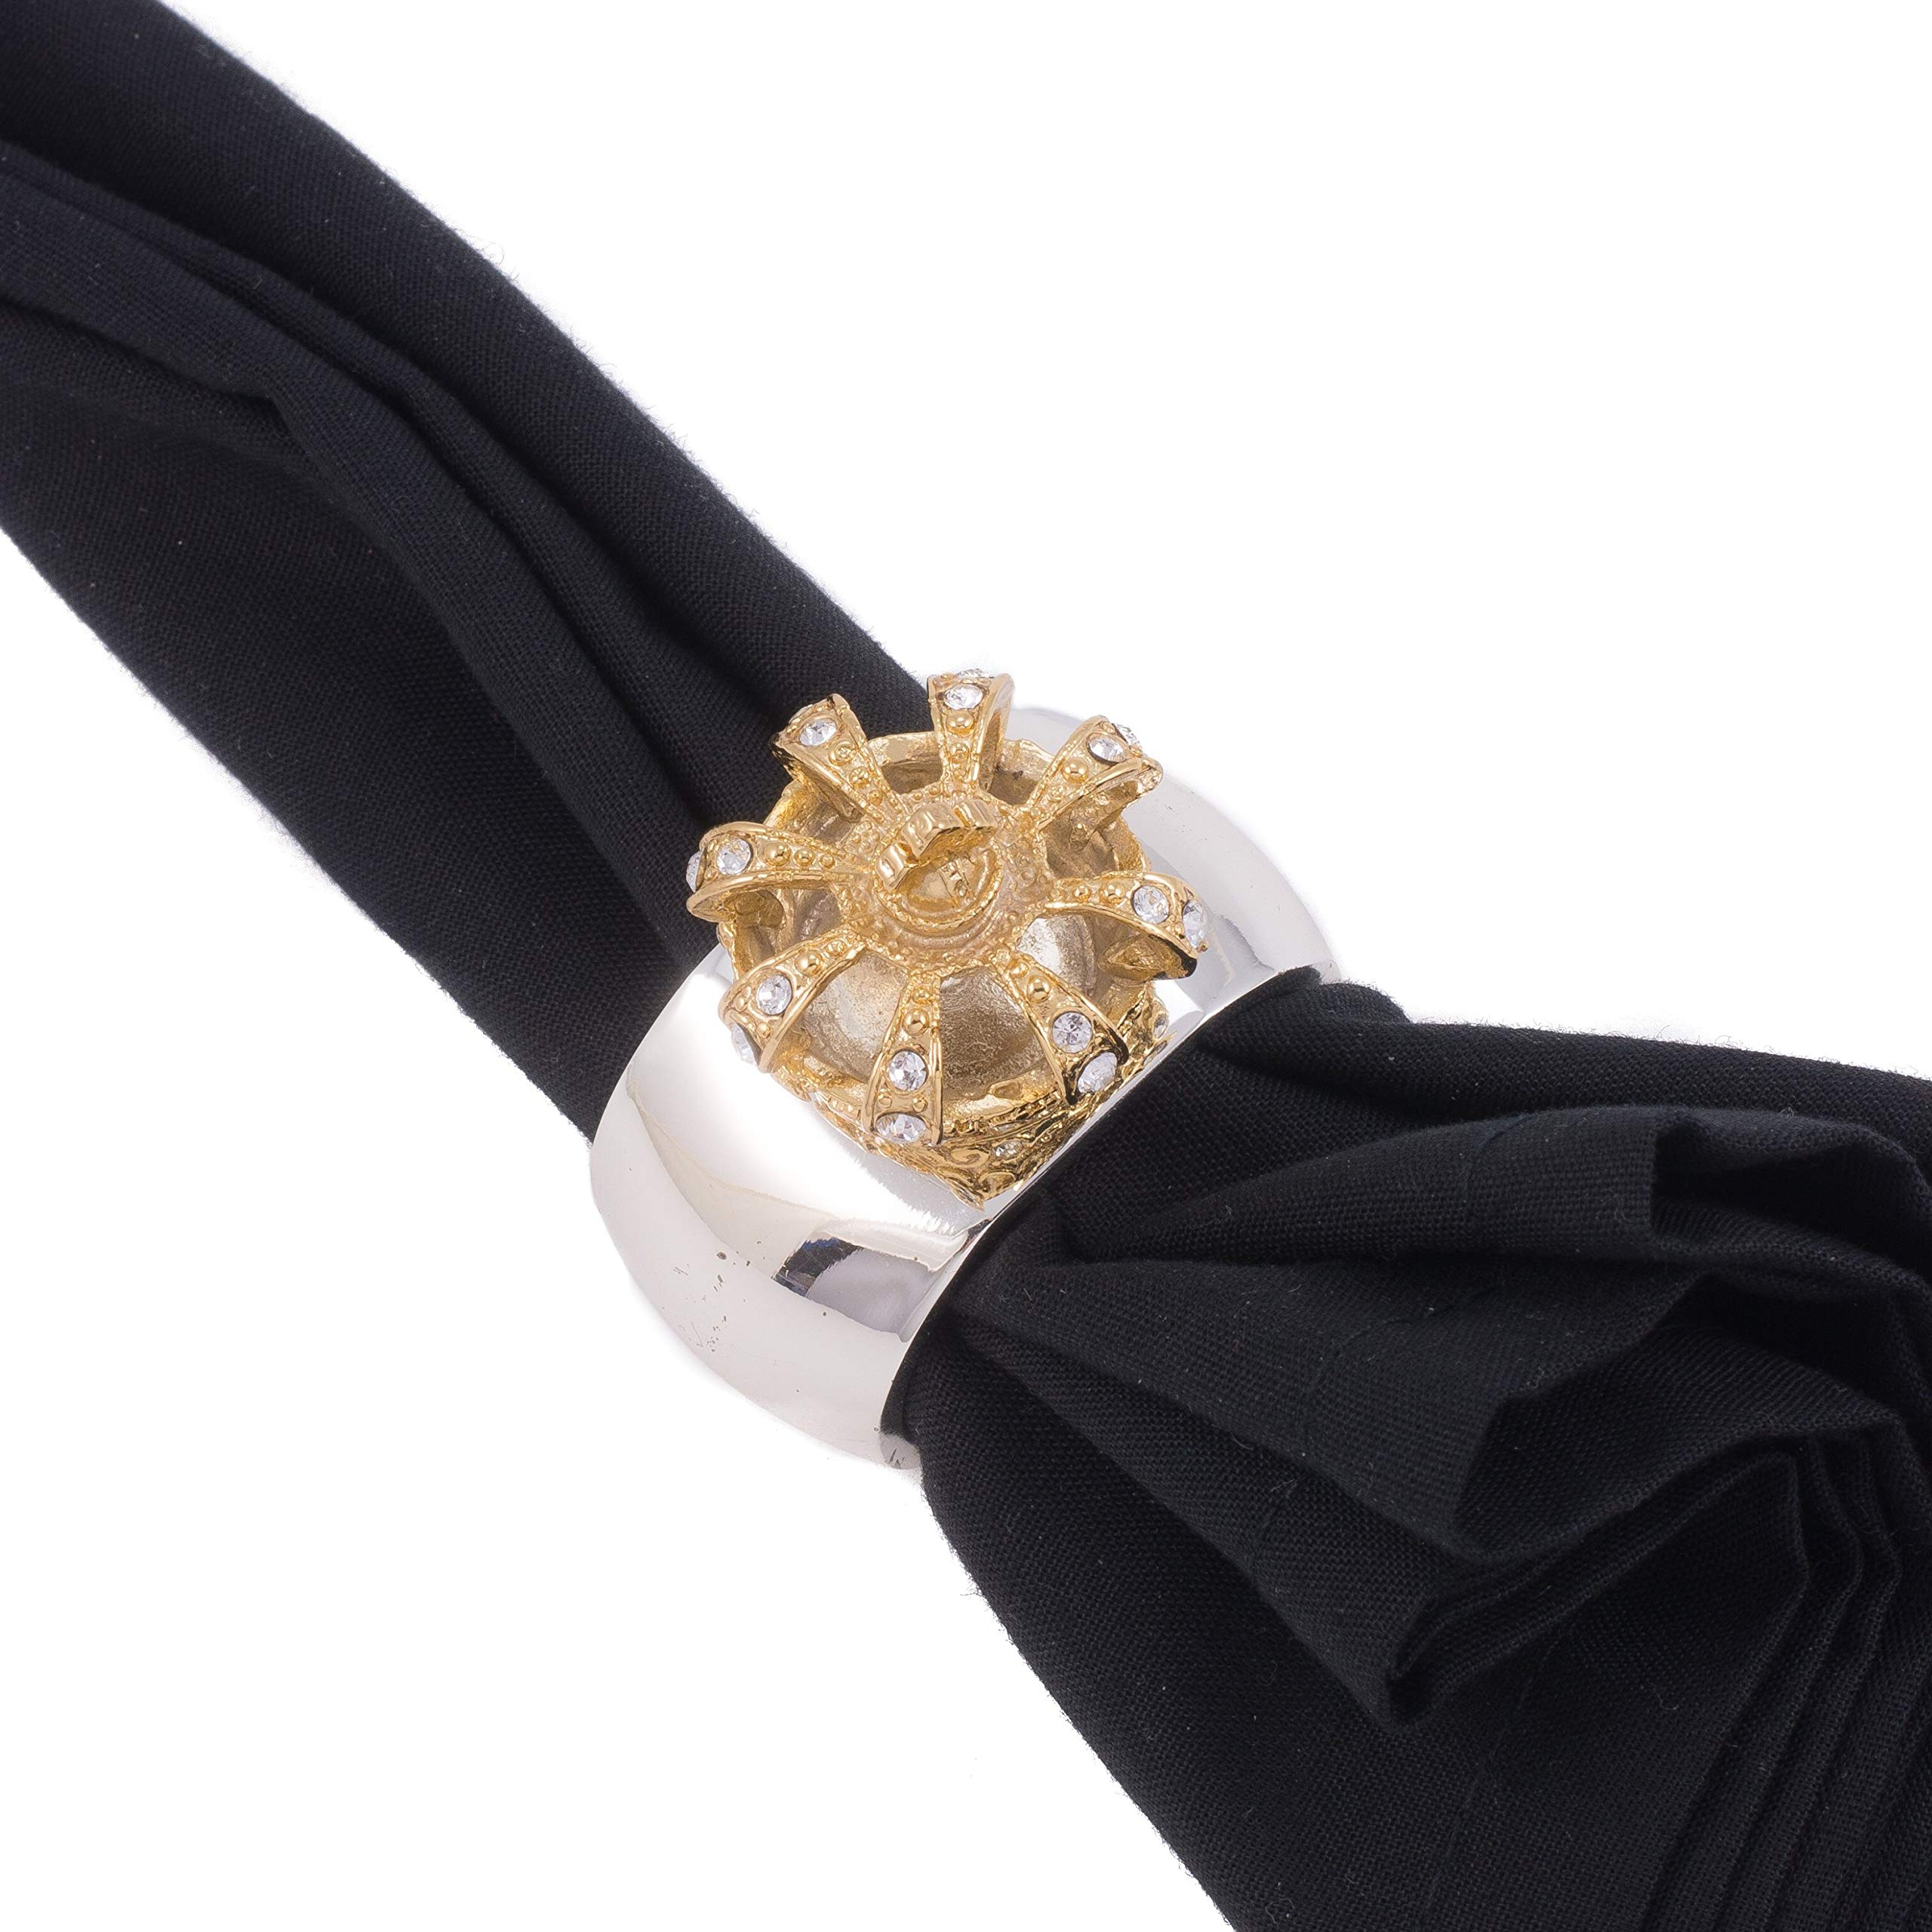 Isabella Adams Gold Crown Napkin Rings Featuring Swarovski Crystals | Set of 4